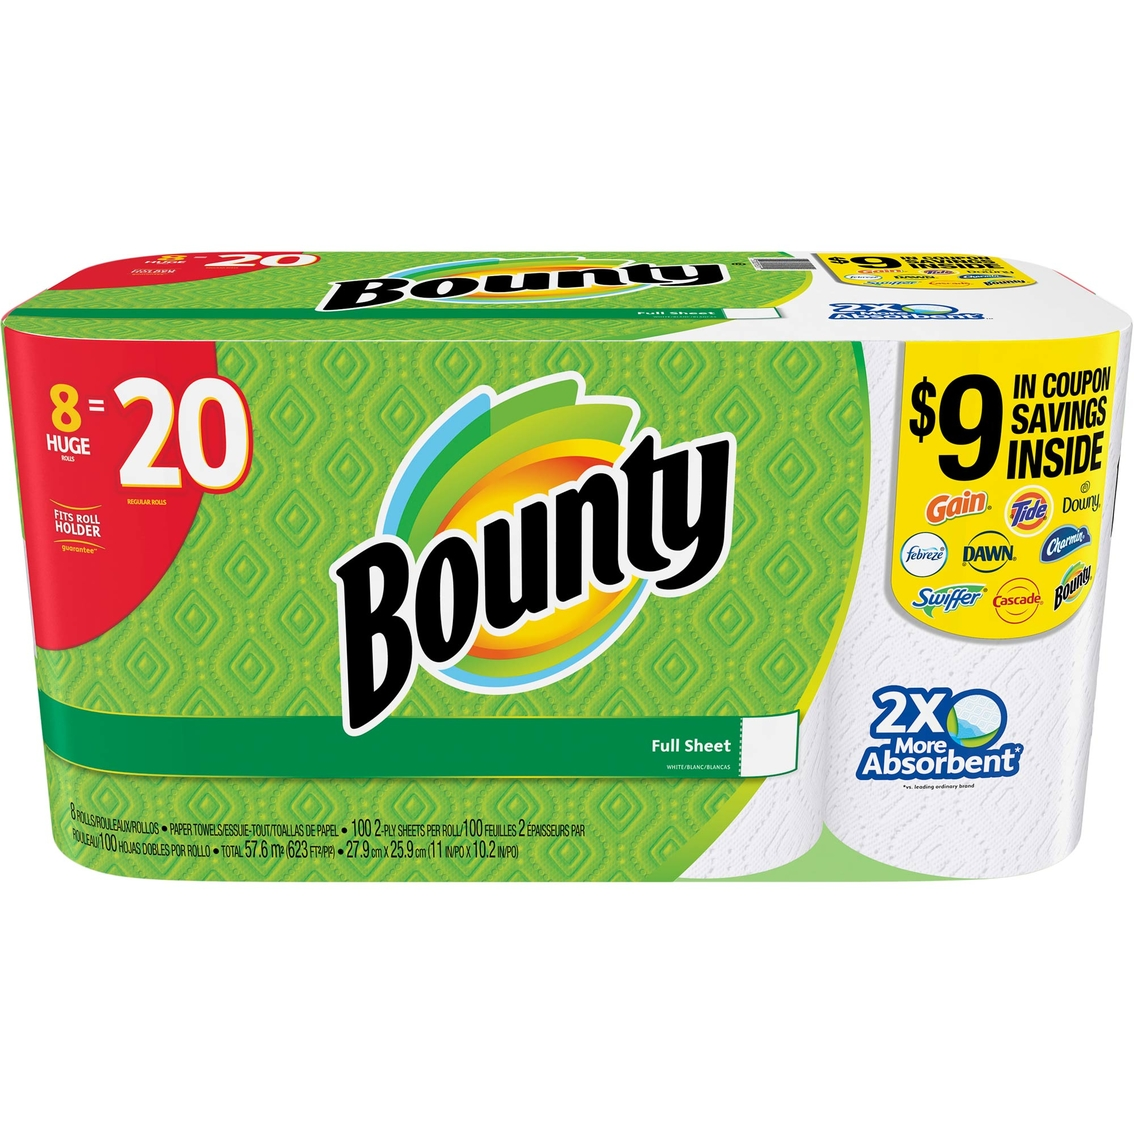 1649bcf6f8e How Many Sheets In A Roll Of Bounty Paper Towels - Towel Image ...